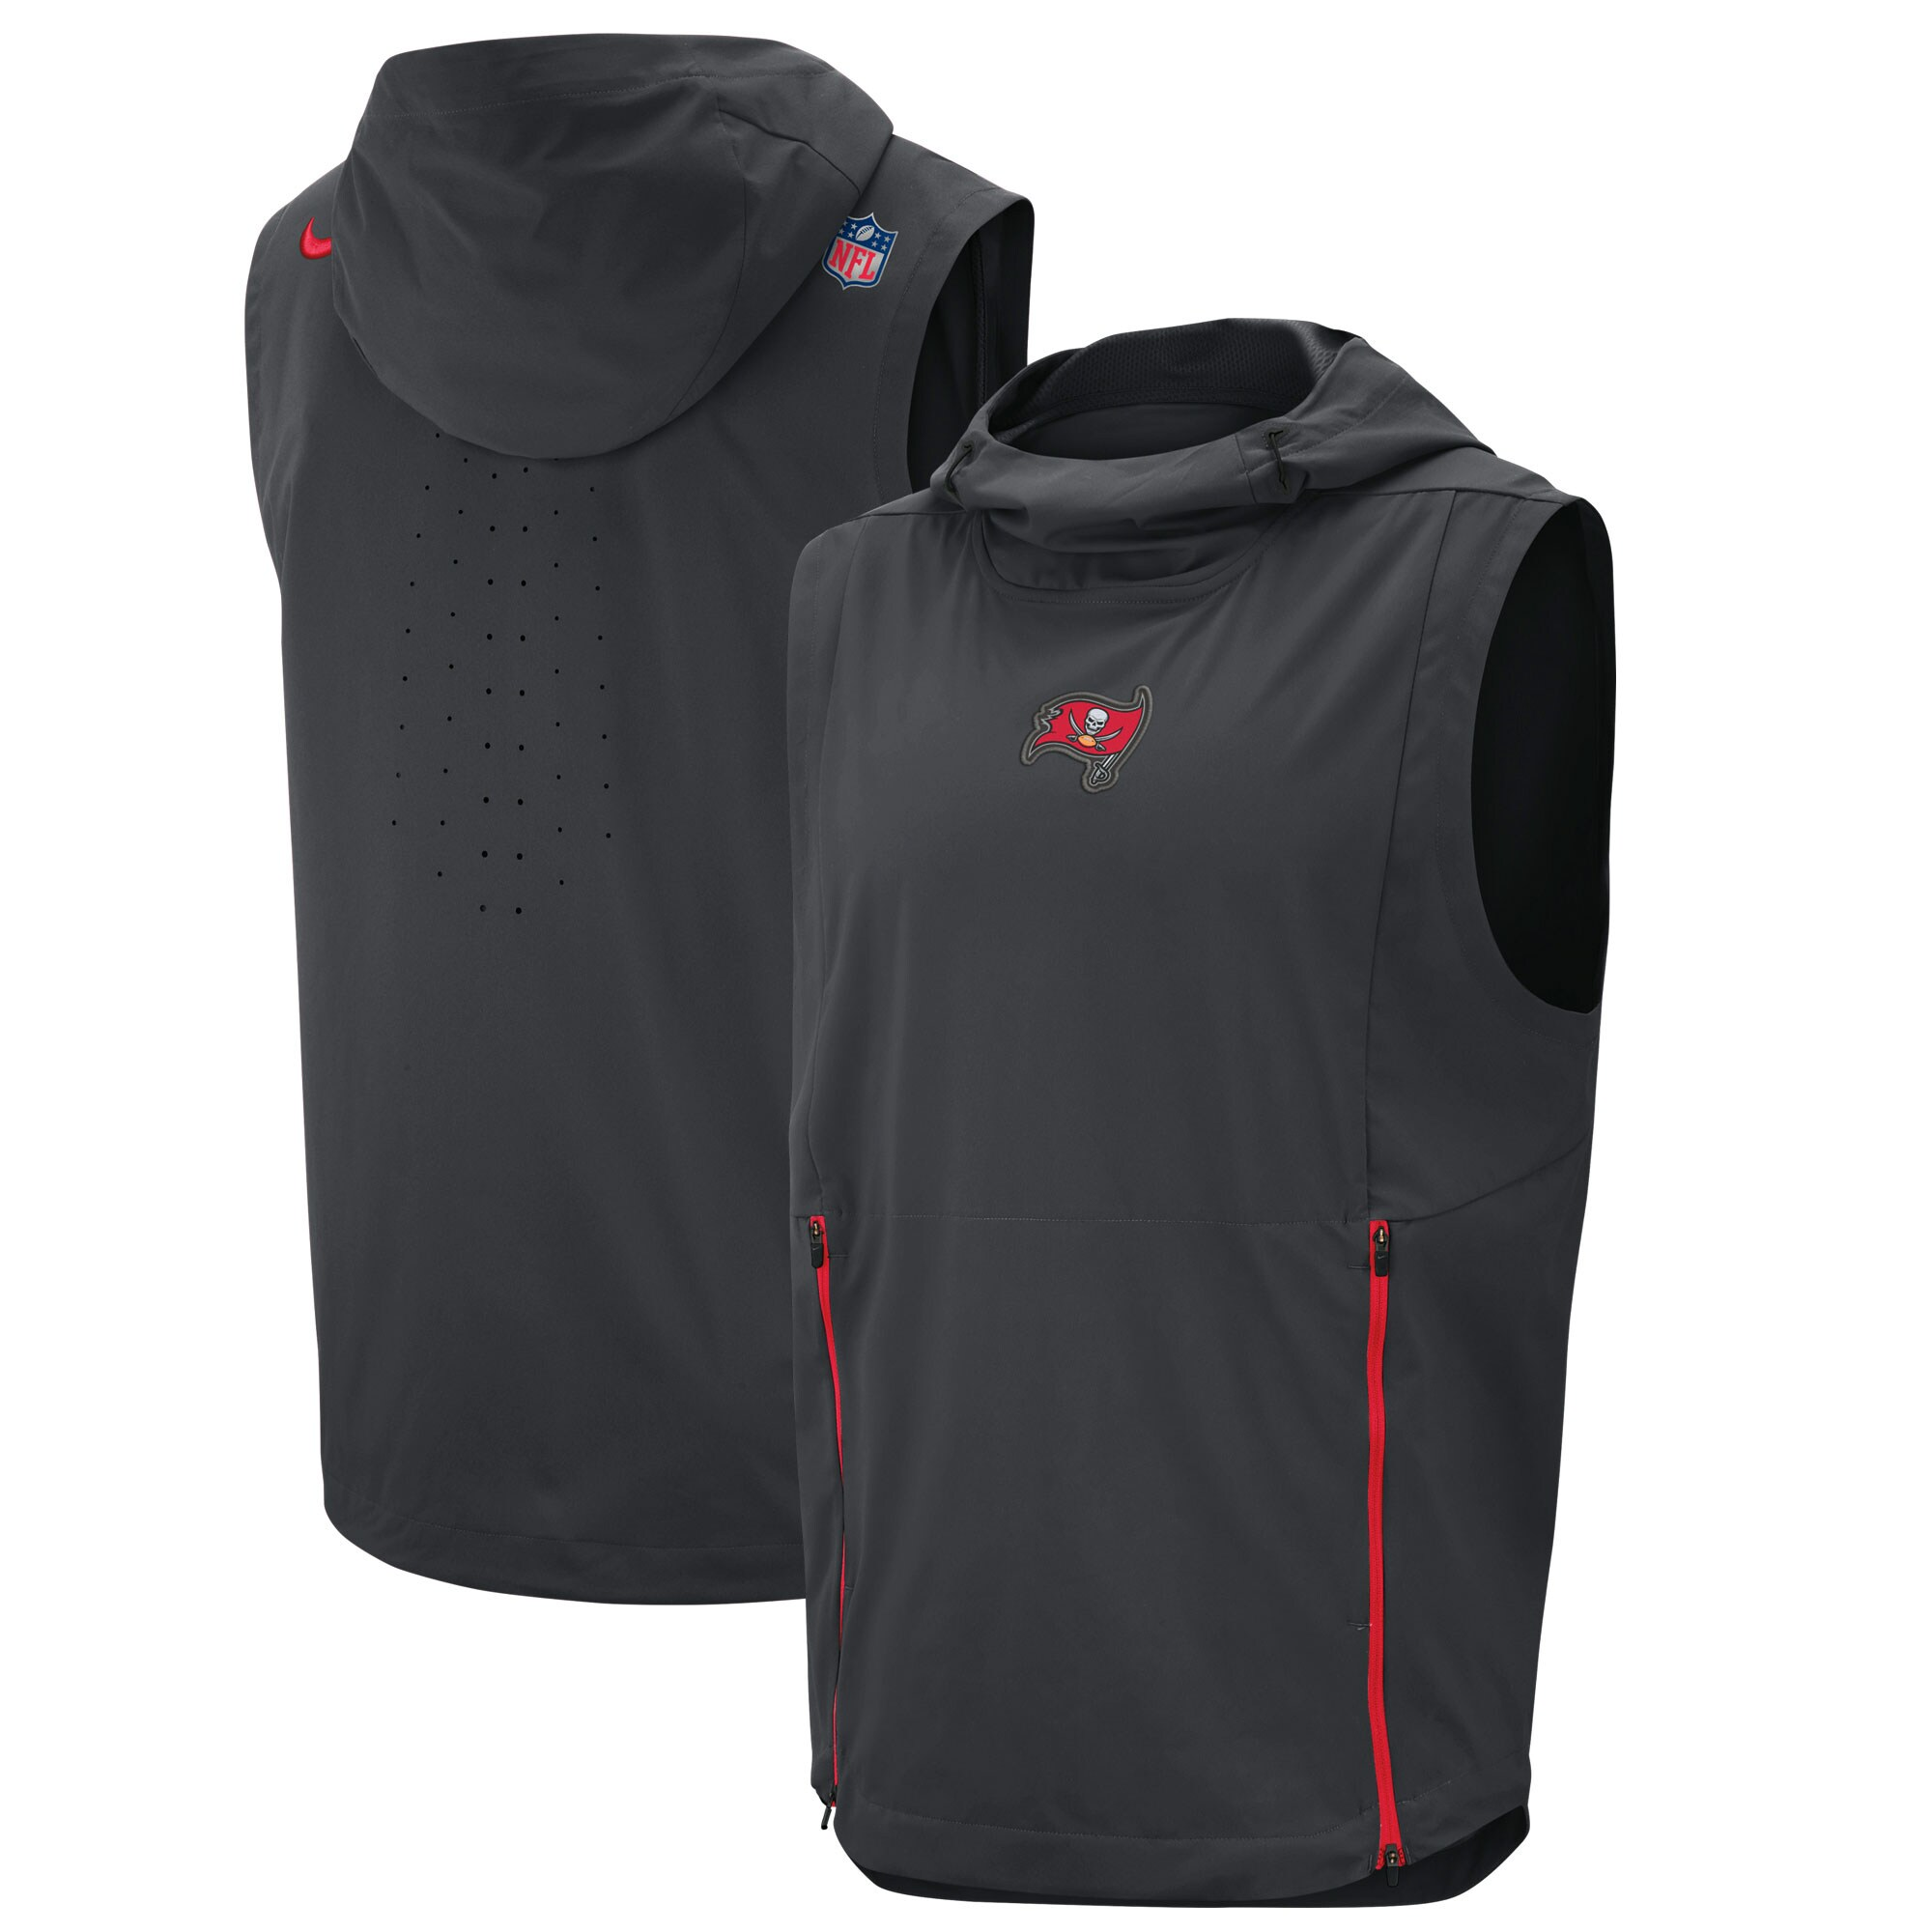 Tampa Bay Buccaneers Nike Sideline Fly Rush Performance Pullover Hooded Vest - Charcoal